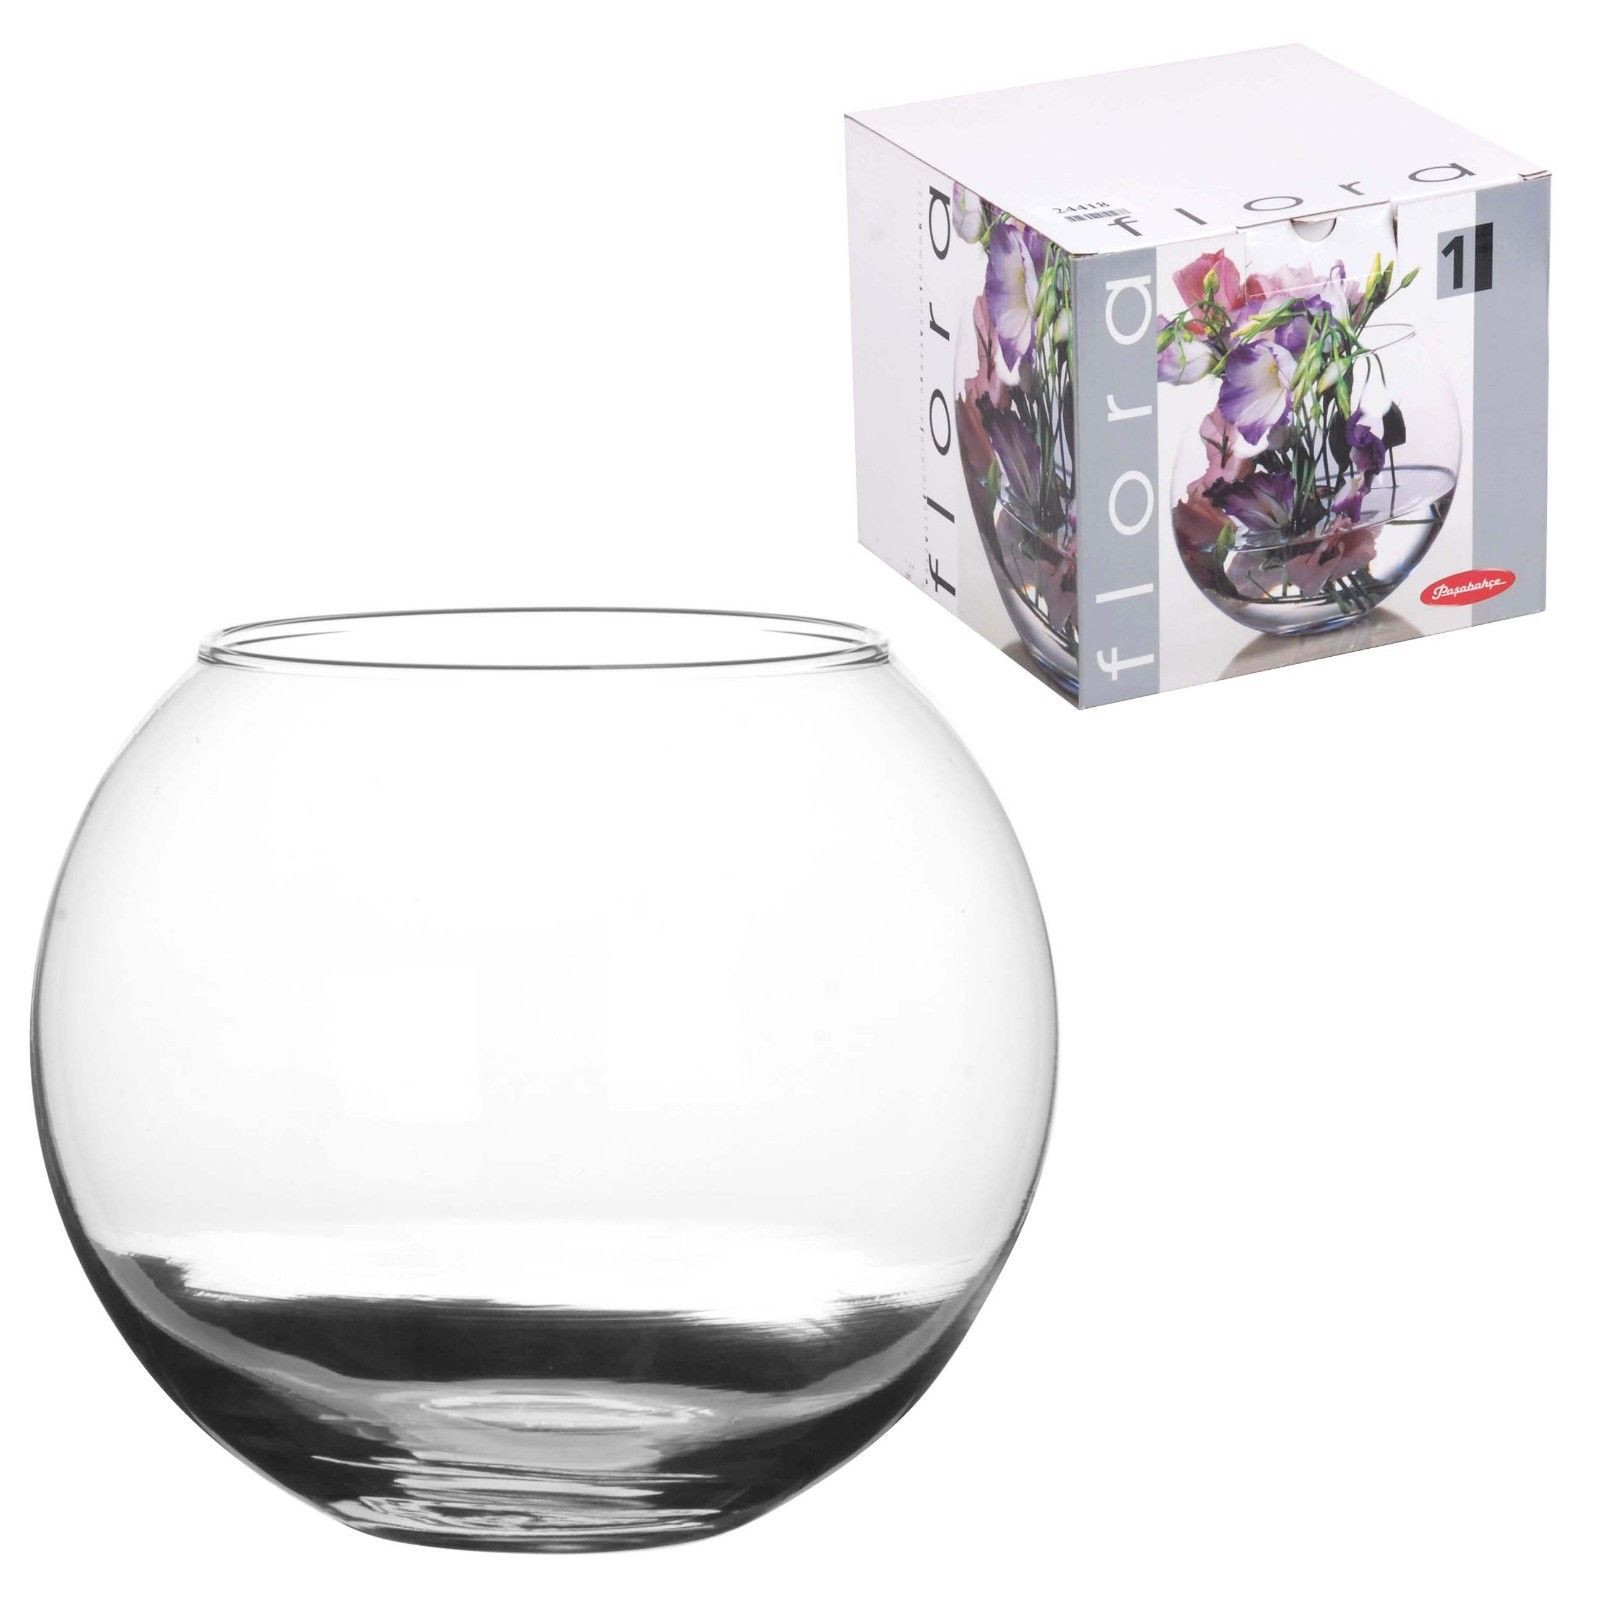 bubble bowl vases wholesale of pasabahce glass 16cm round botanica flower vase display fish bowl in 16 cm fishbowl bubble ball bowl